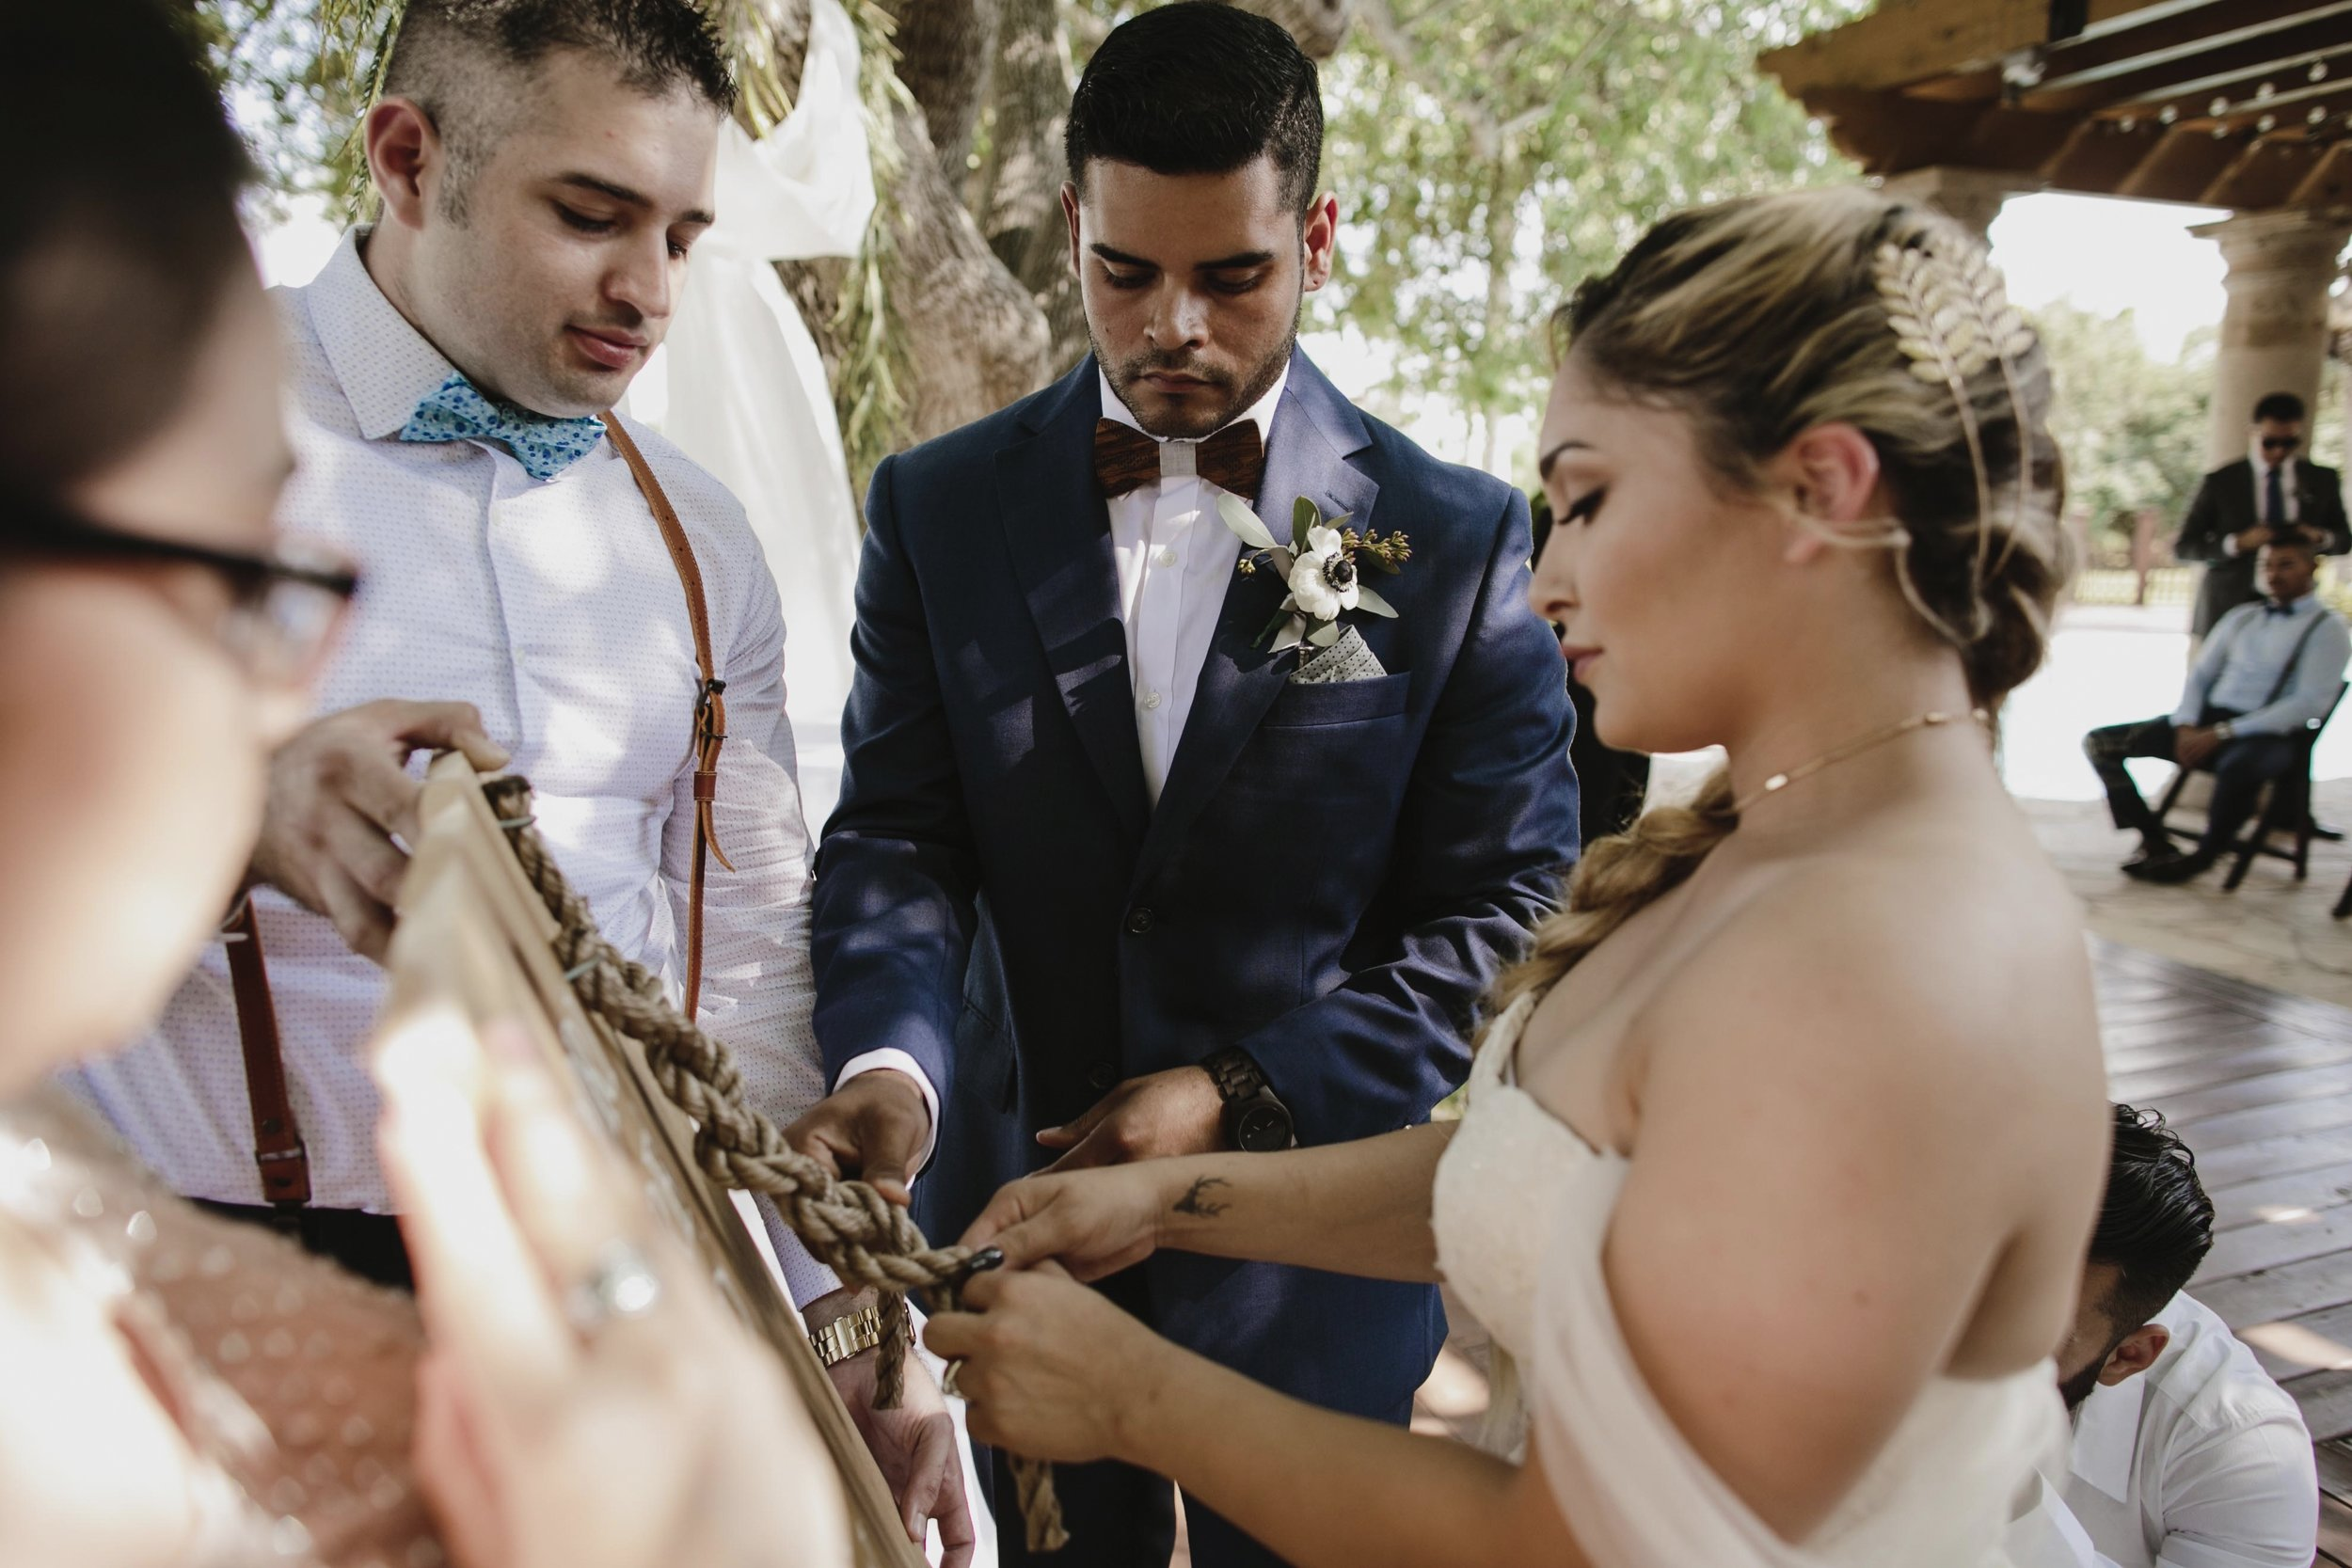 alfonso_flores_destination_wedding_photography_rancho_la_pergola_brownsville_texas34.jpg